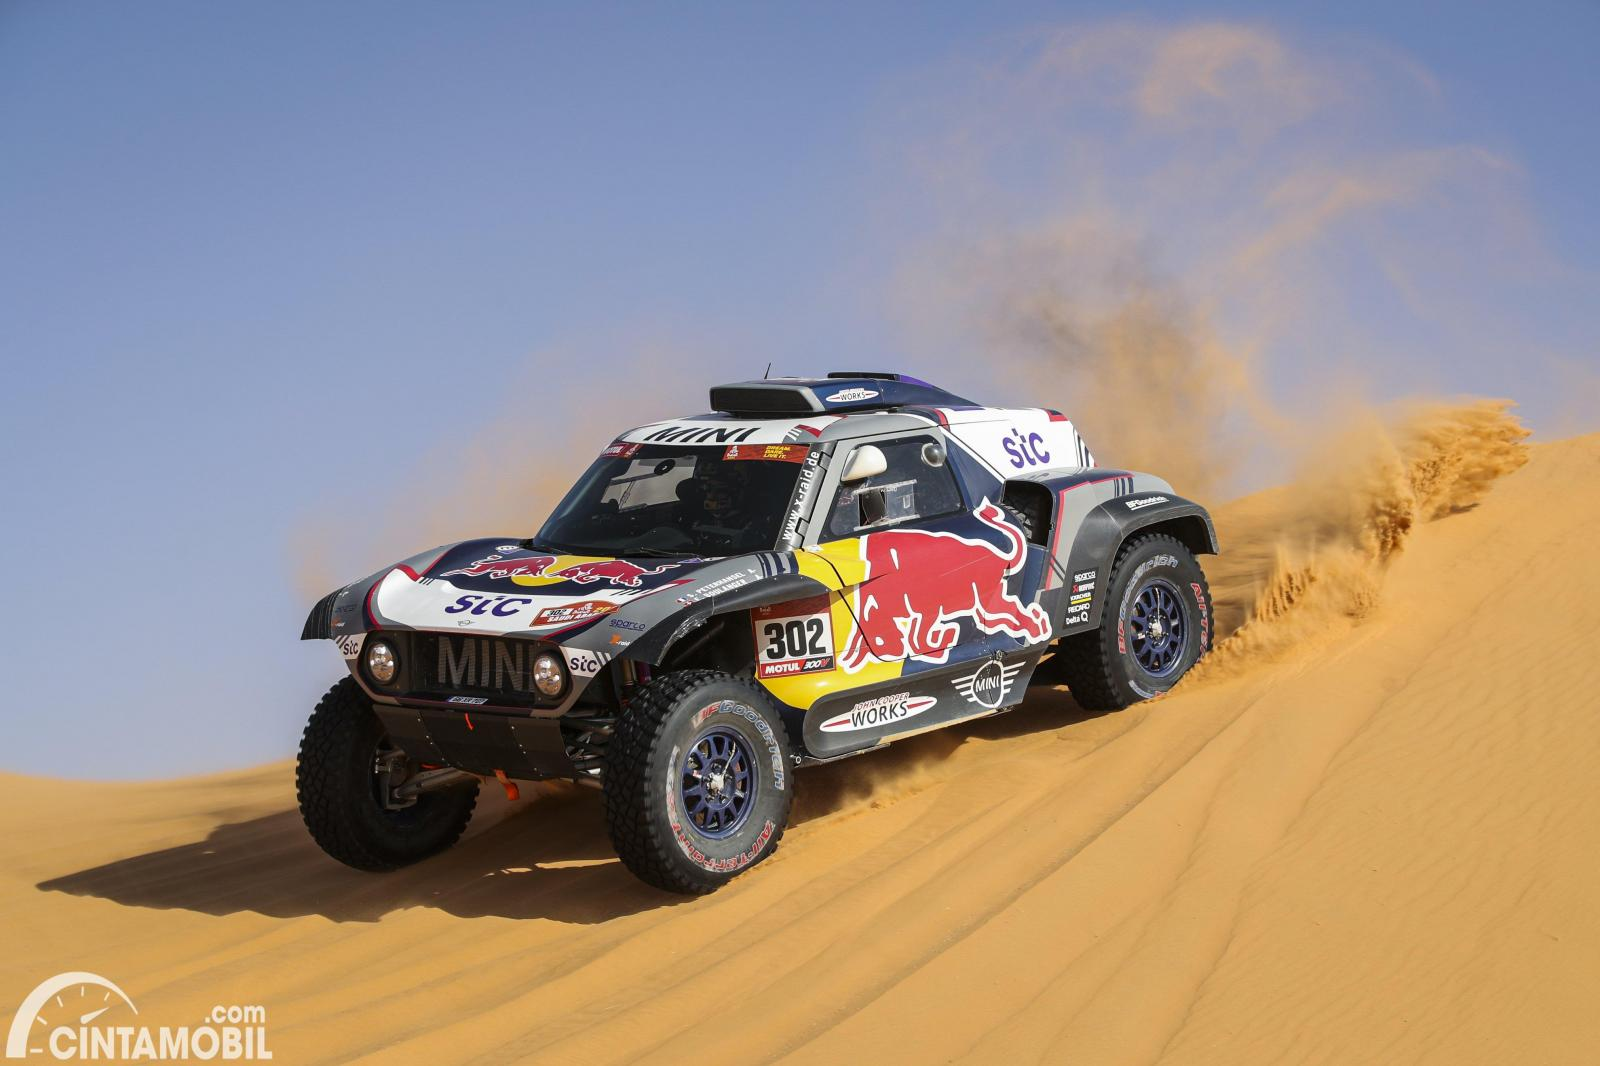 Stephane Peterhansel mengendarai MINI X-Raid JCW Buggy #302 di Dakar 2021 Stage 6